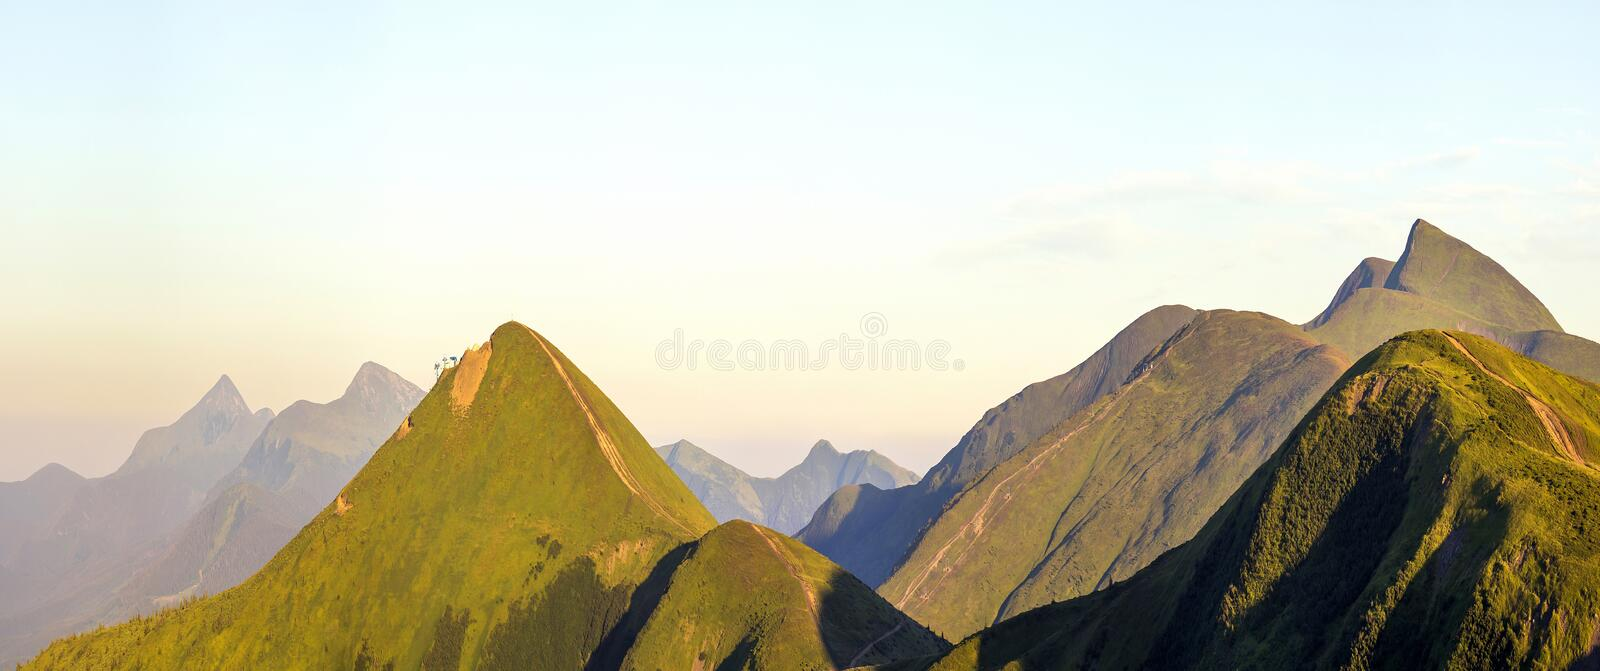 Carpathian mountain landscape in summer. Panoramic view. Sunset in Ukraine mountains. Wide panorama stock photos